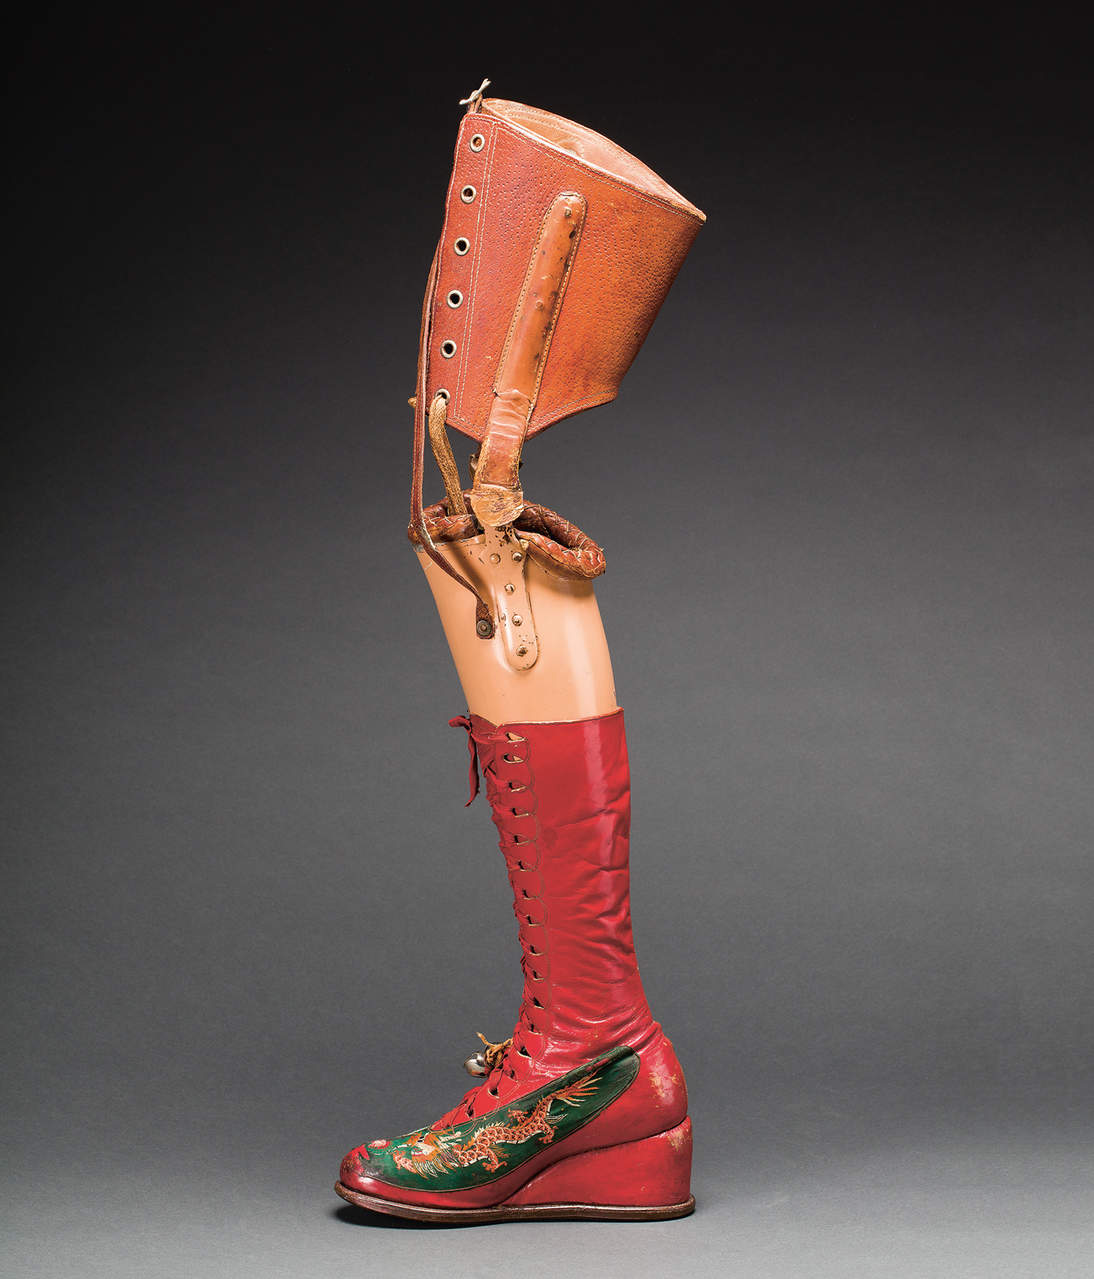 Prosthetic leg with leather boot. Diego Rivera and Frida Kahlo Archives, Banco de México, Fiduciary of the Trust of the Diego Rivera and Frida Kahlo Museums. Photograph: Javier Hinojosa